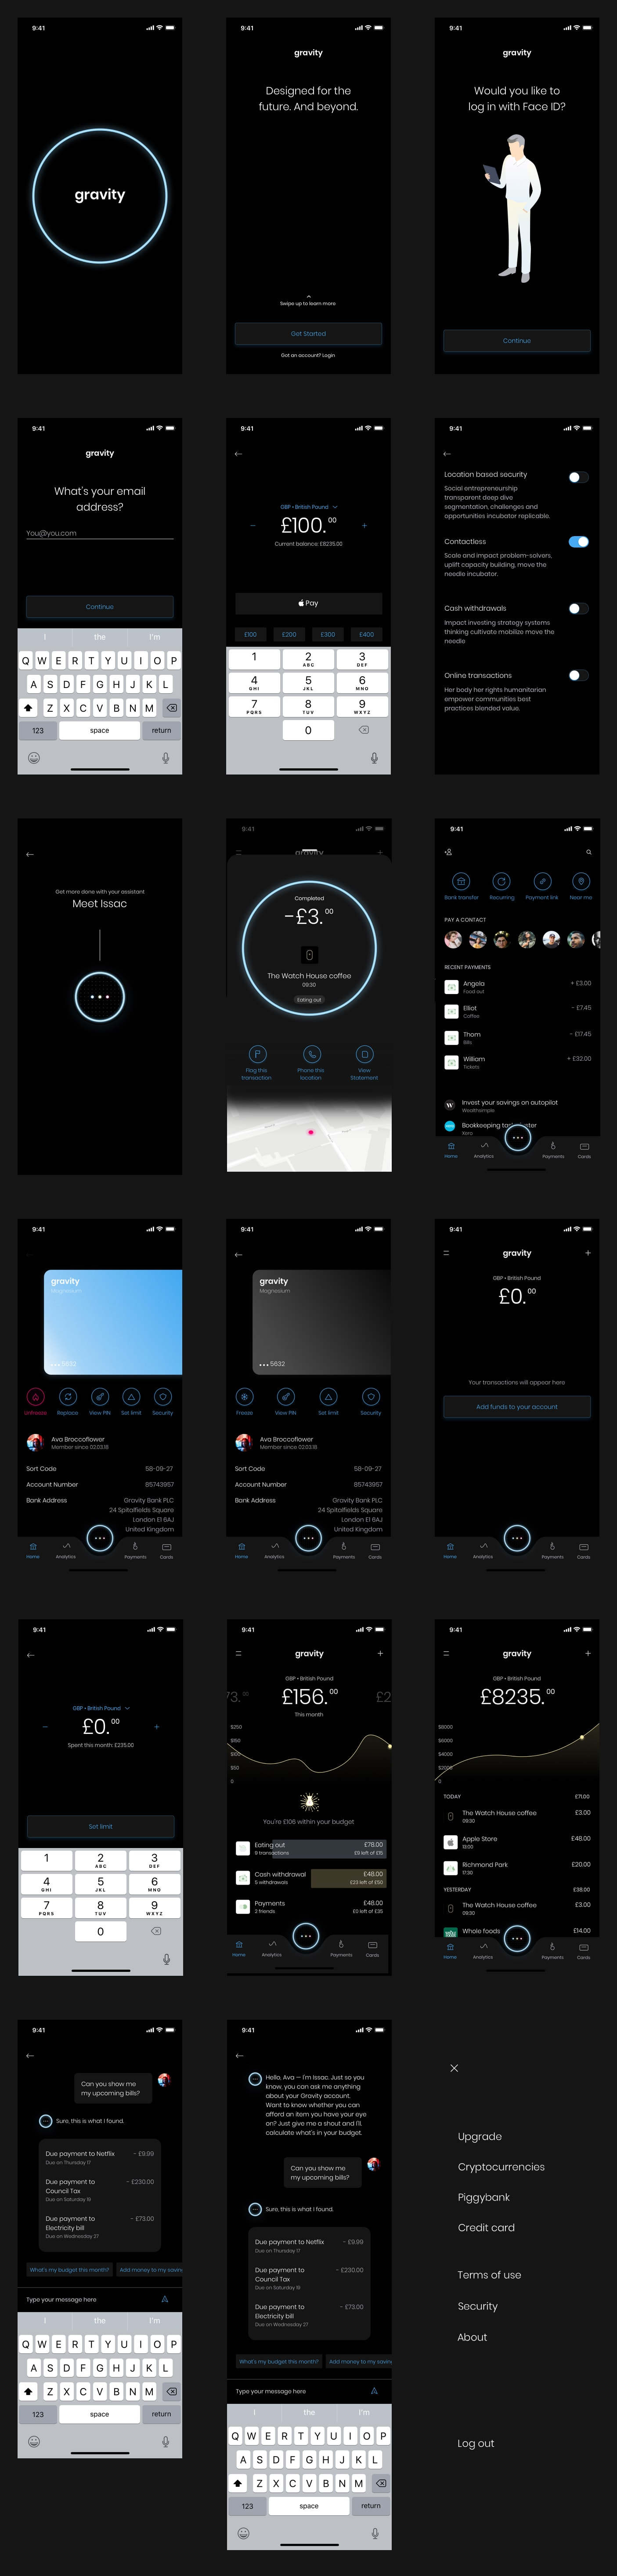 Gravity - The UI Kit from UIGarage